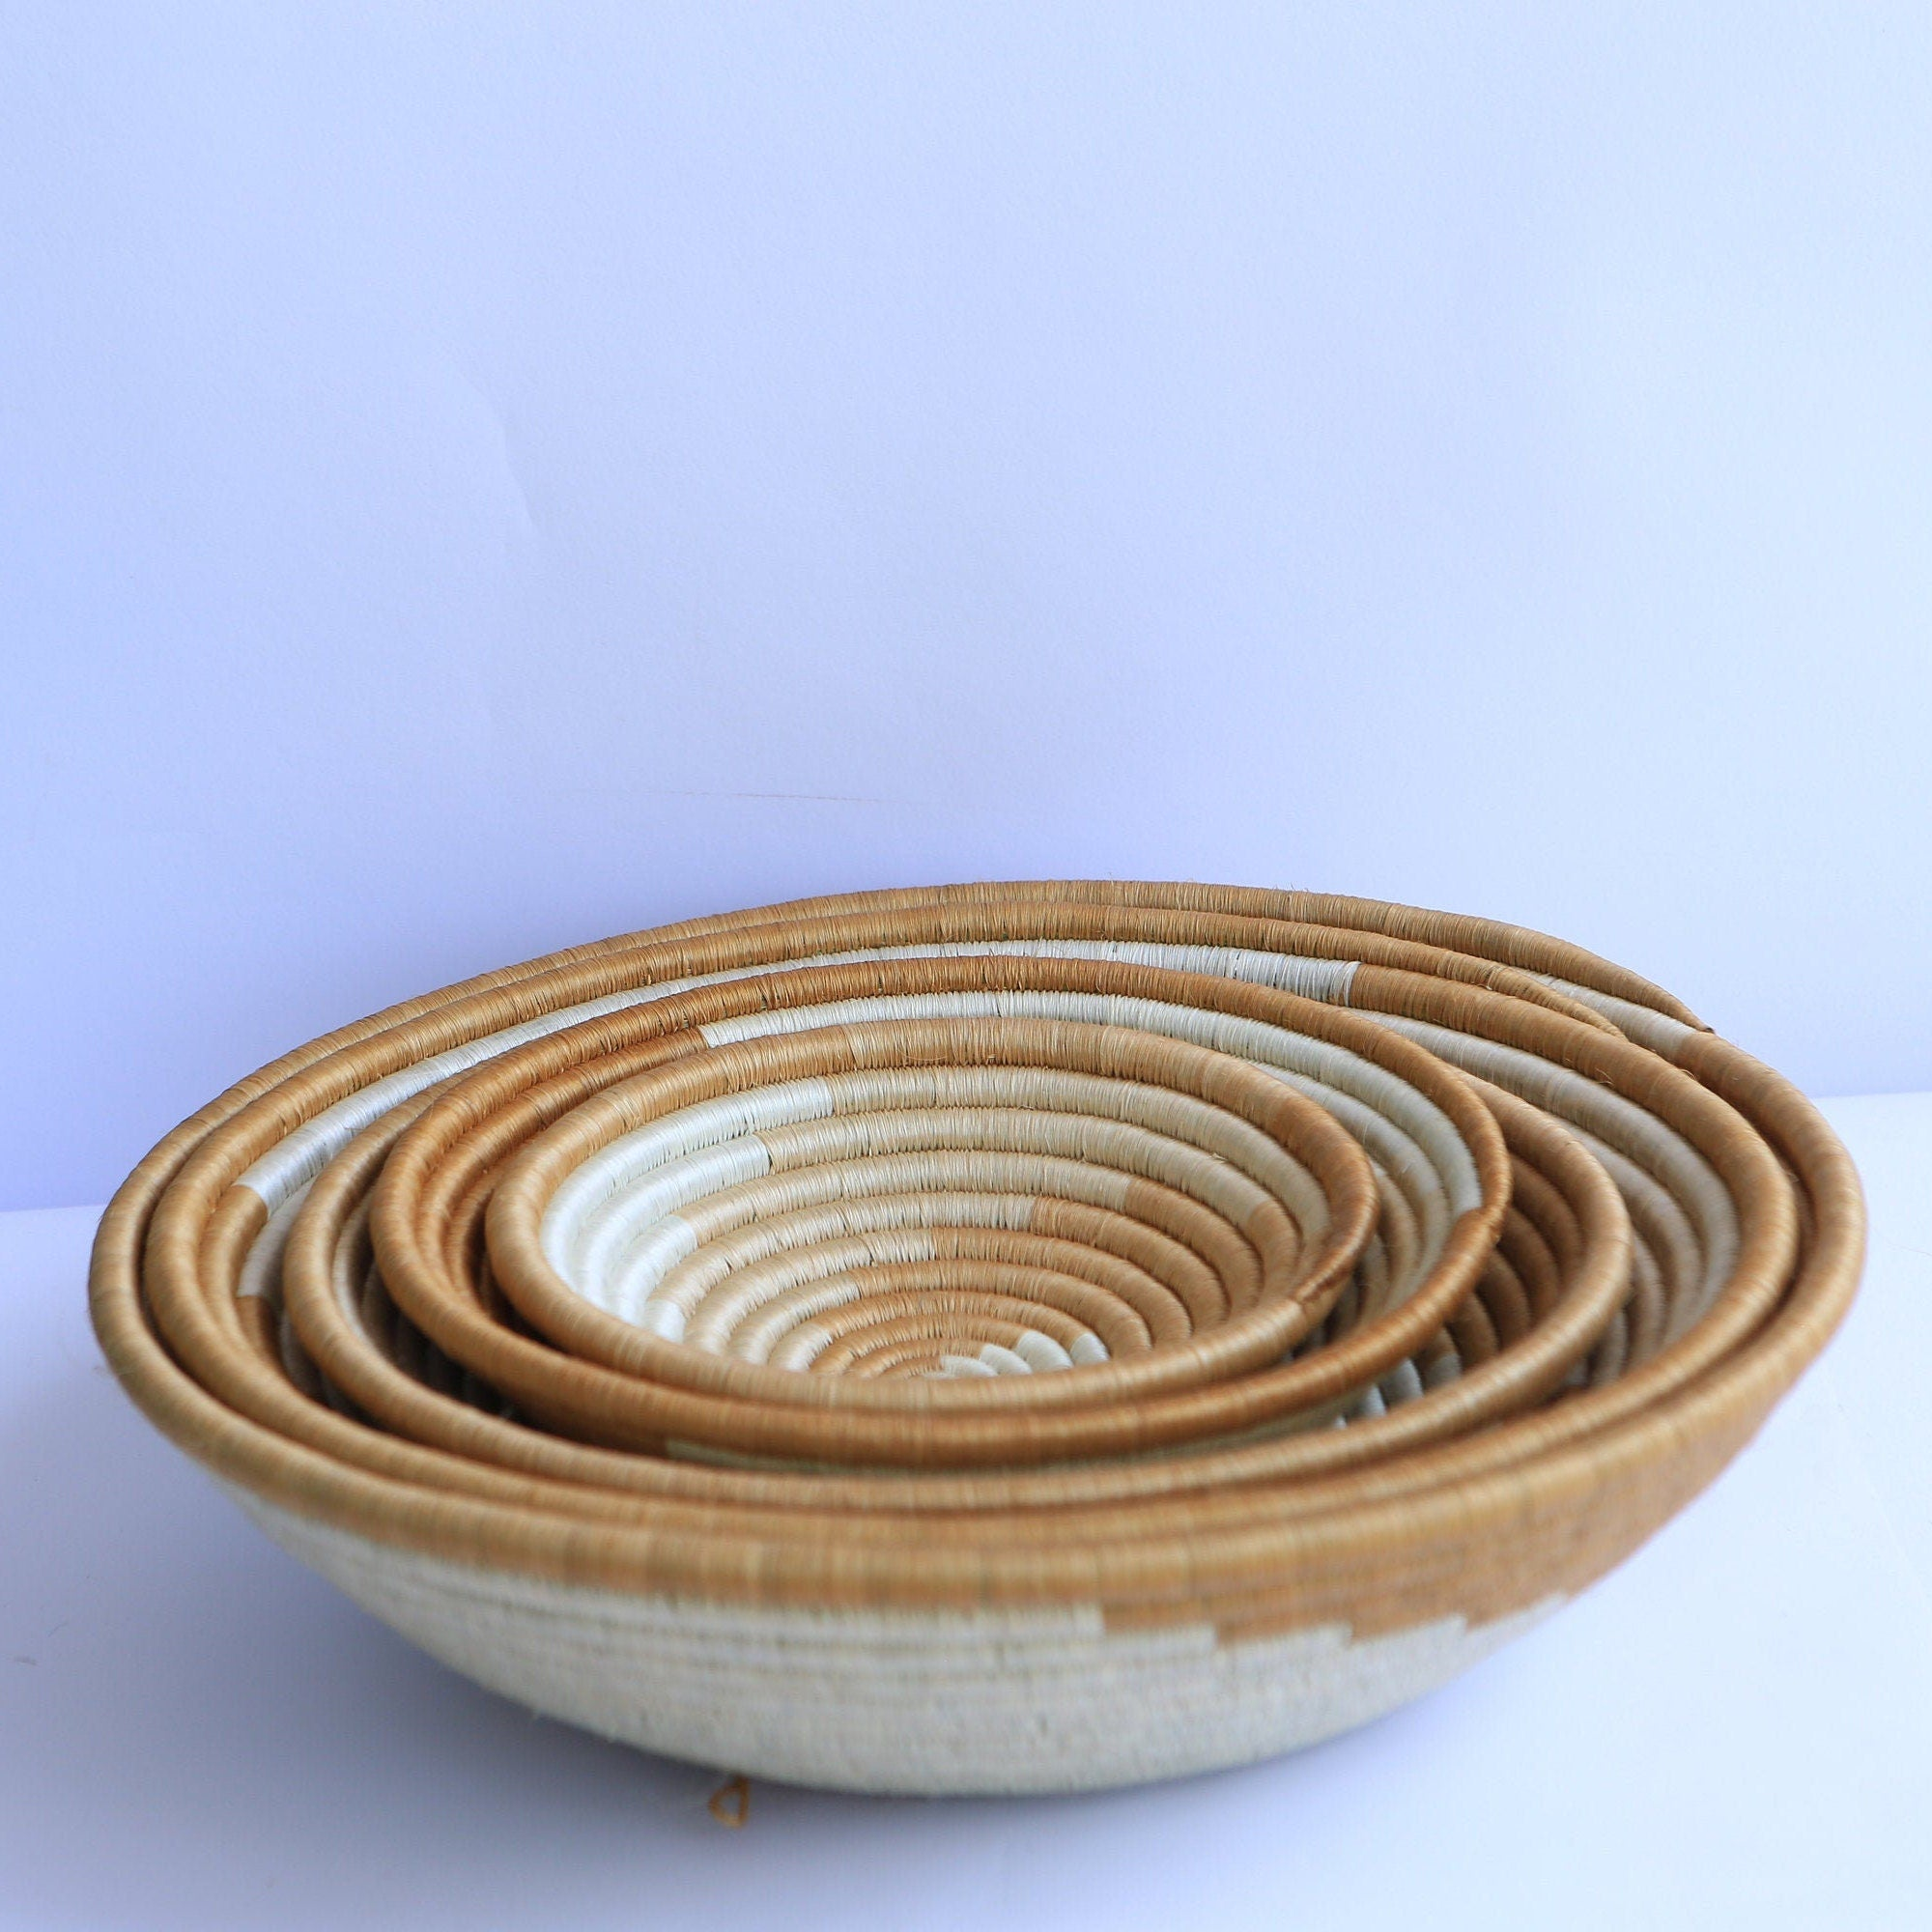 Umuraba African Wall Basket, Rwanda baskets, African Woven basket. White and Brown - African Baskets , African Basket , Rwanda Baskets , Wall baskets Woven Basket